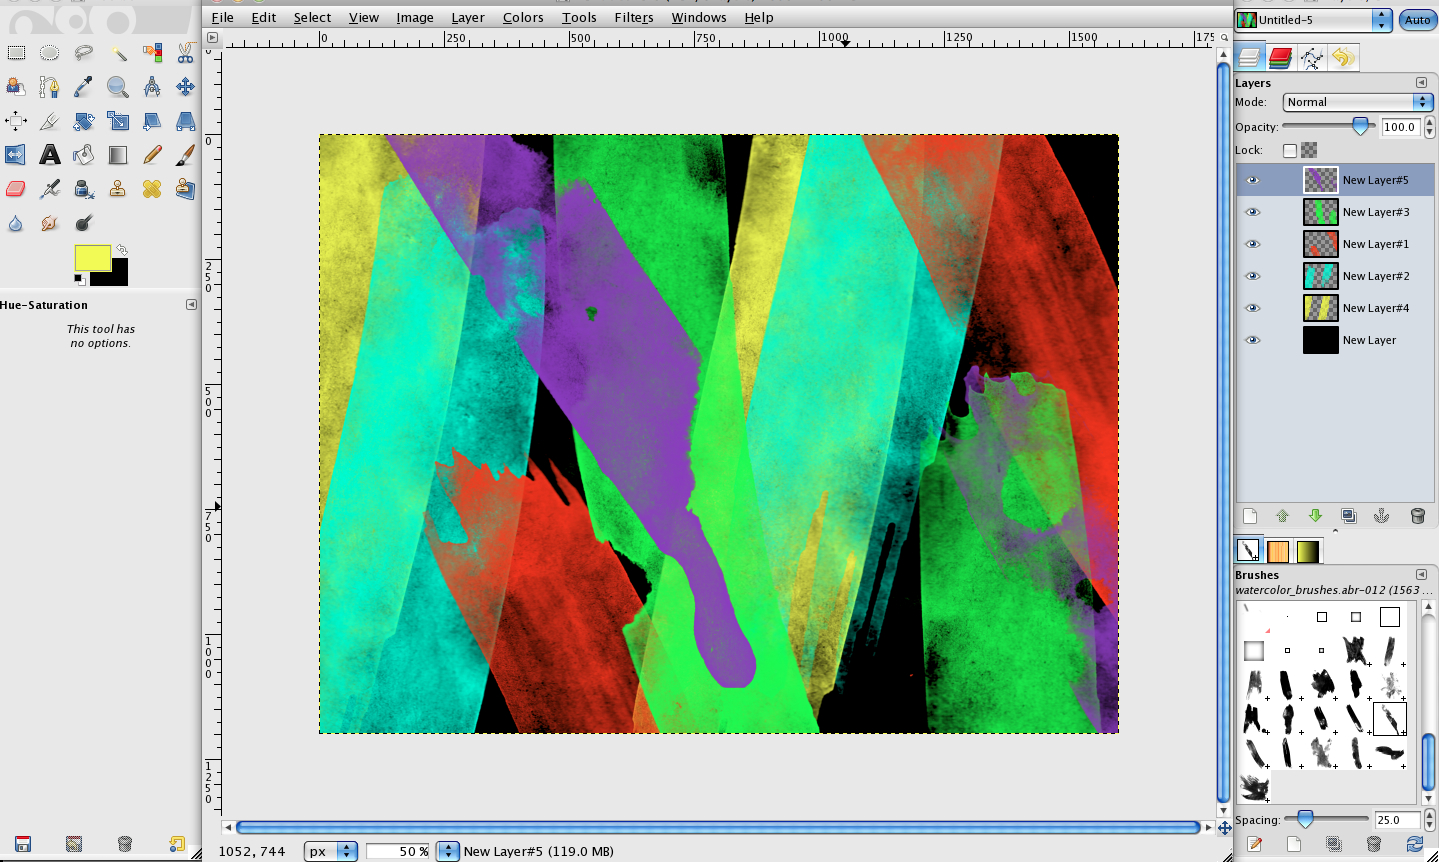 how to make an image smaller in gimp